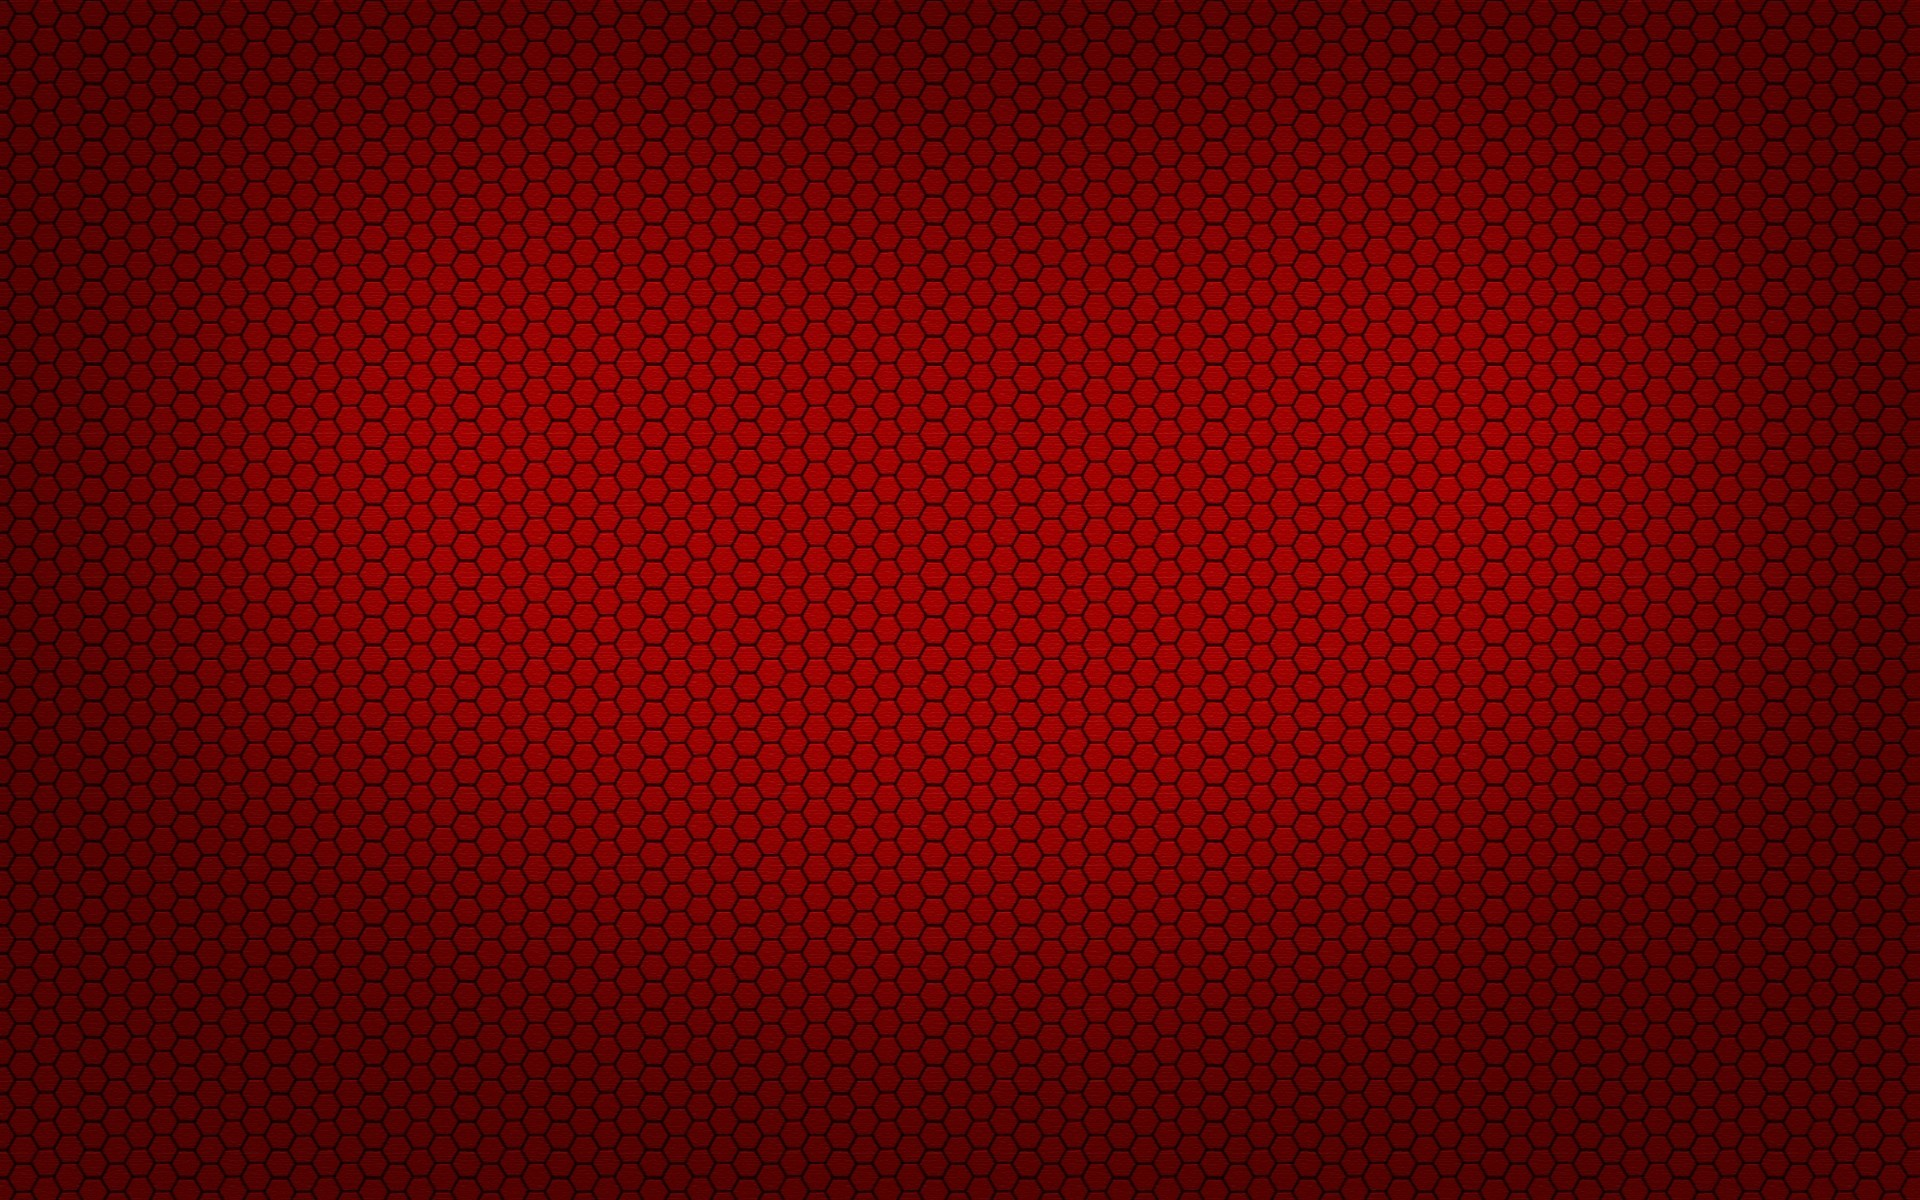 Red Background Hd Download Free Beautiful Full Hd Backgrounds